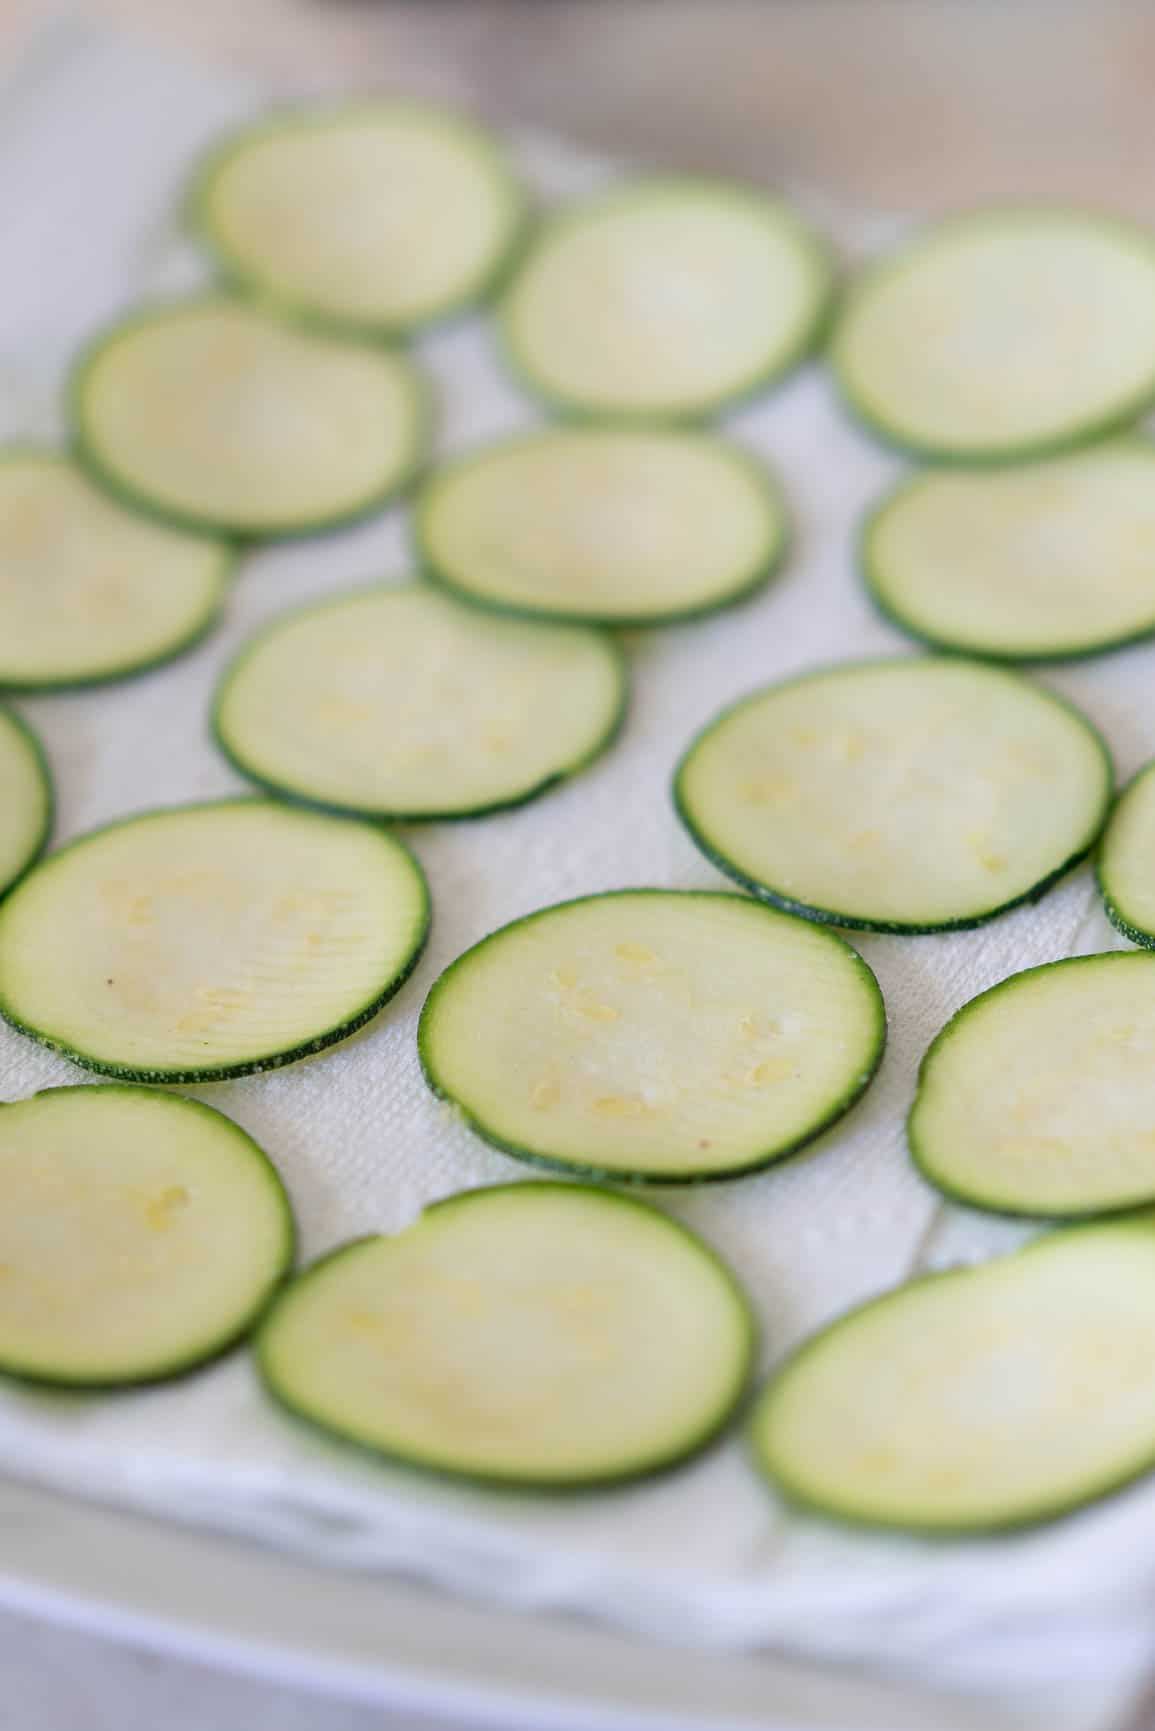 Thinly sliced zucchini